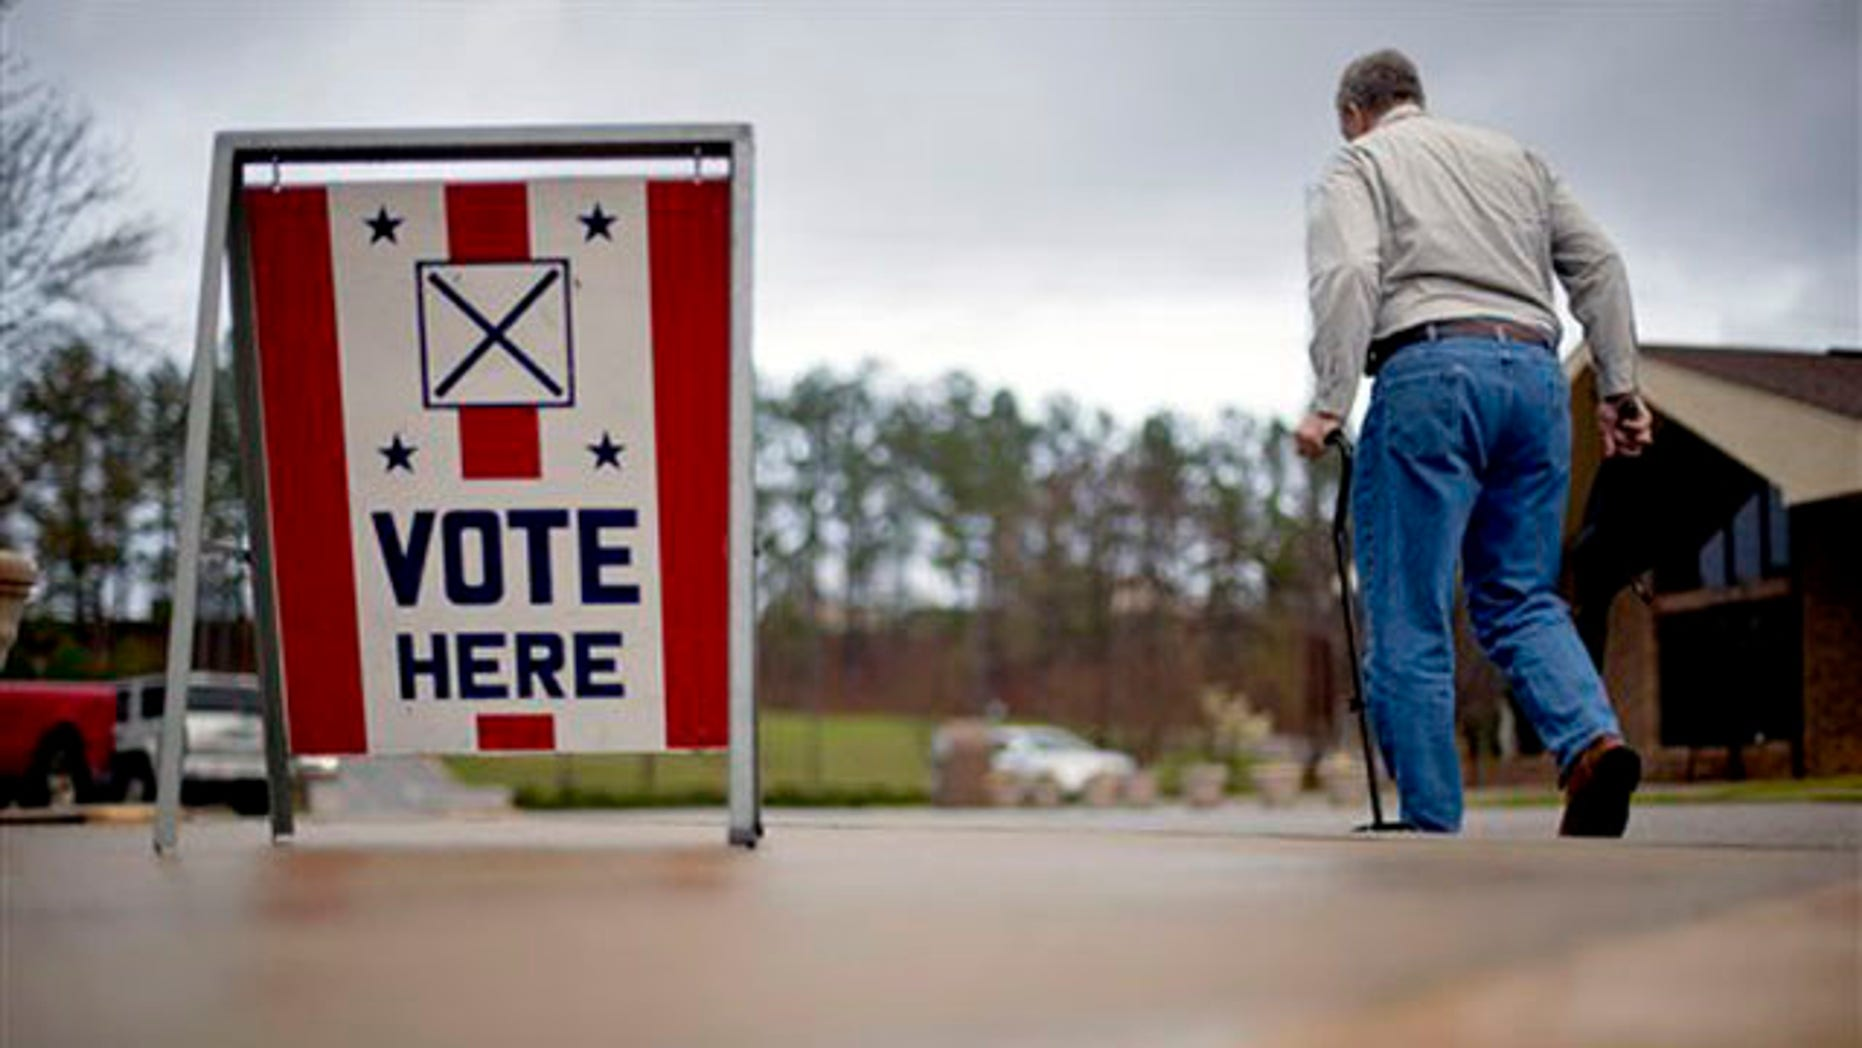 A voter leaves a polling place in Birmingham, Ala. in 2012